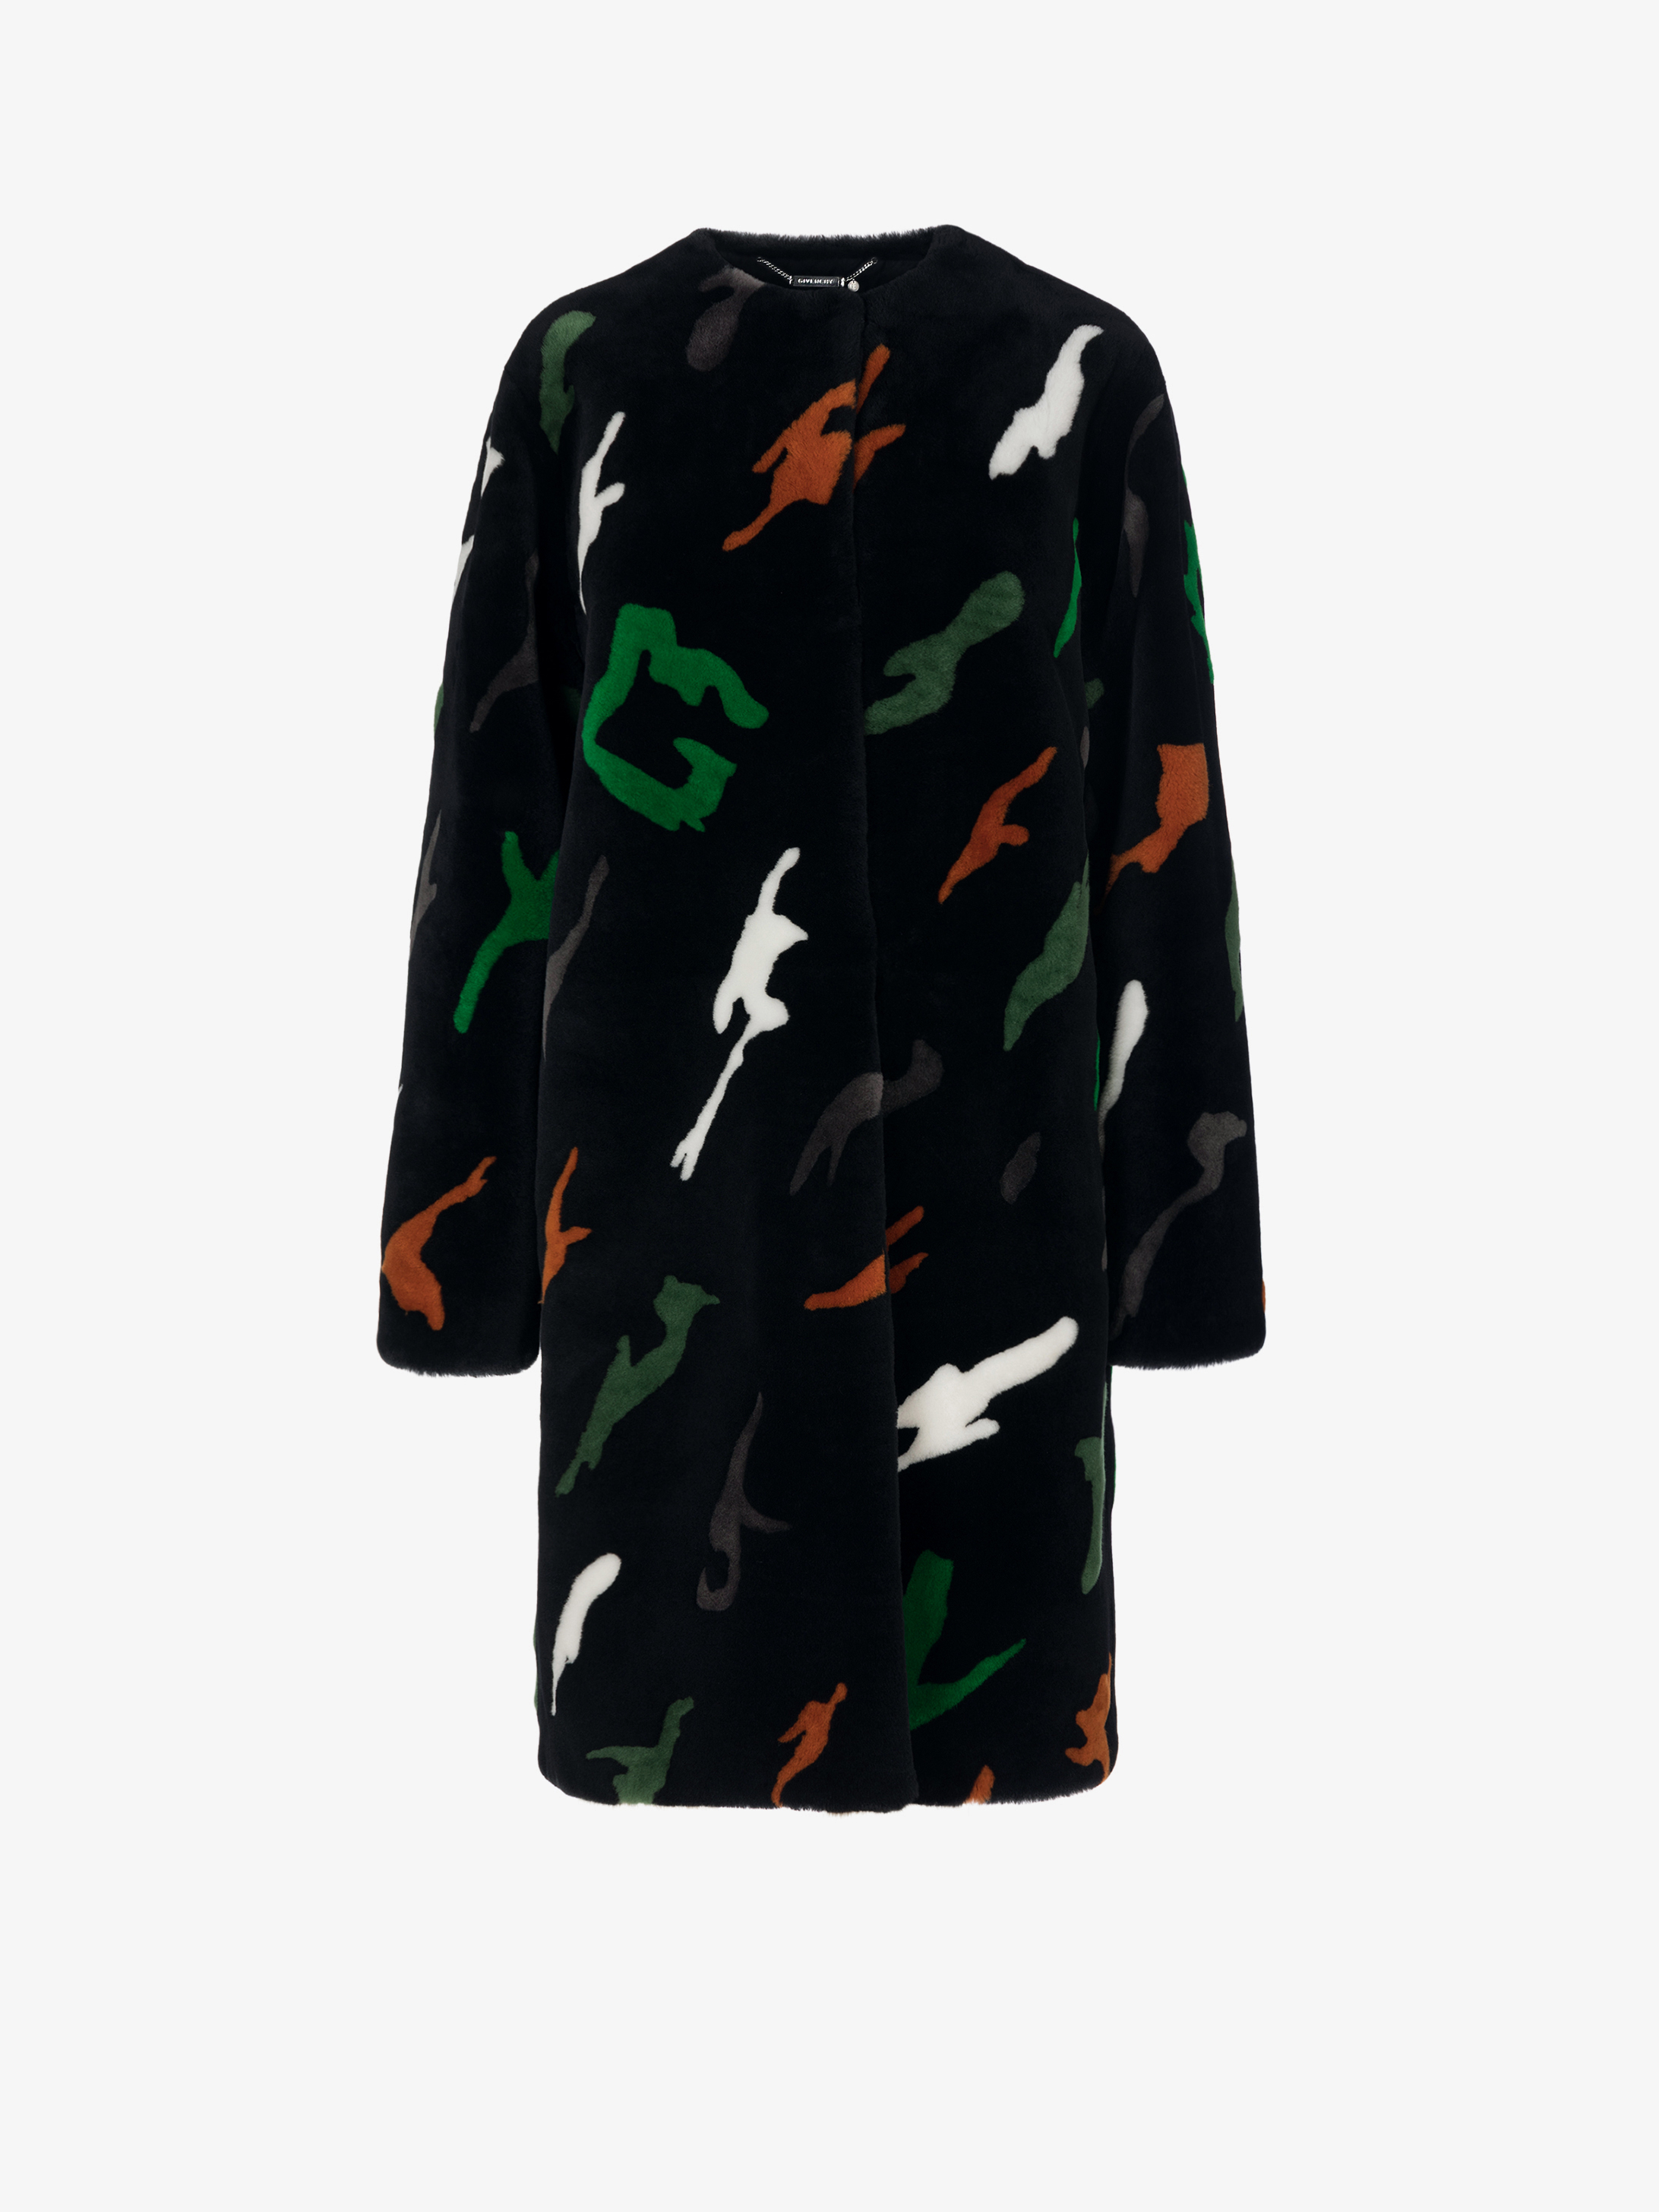 GIVENCHY camo oversized coat in shearling